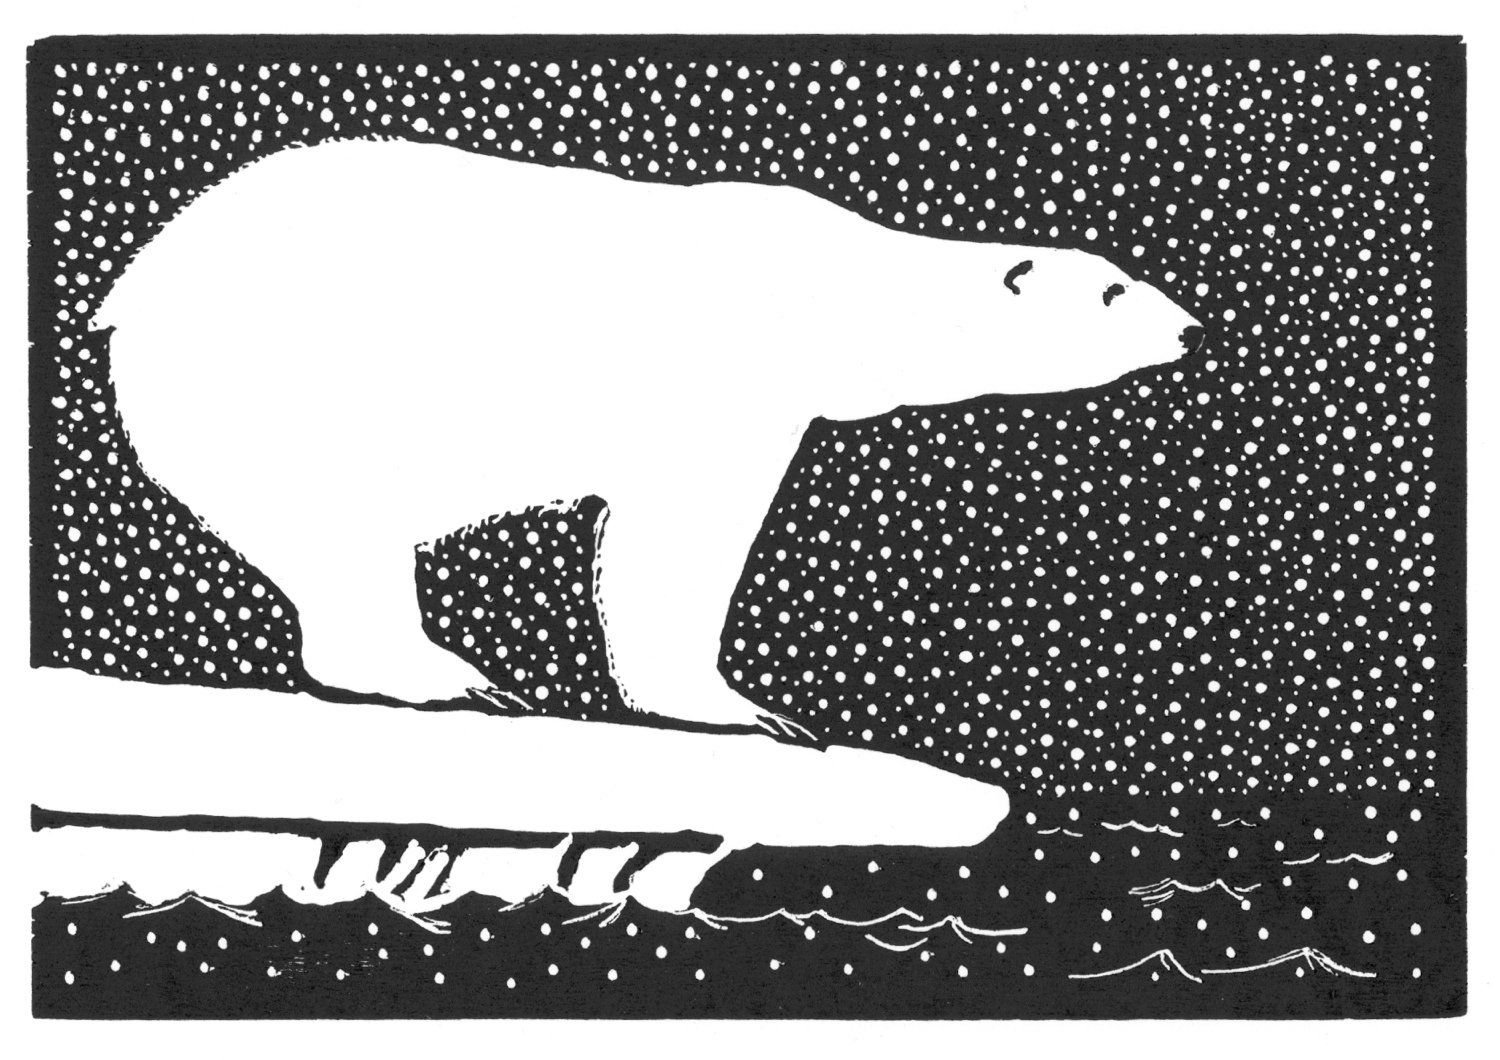 woodcut_polarbear_upload.jpg